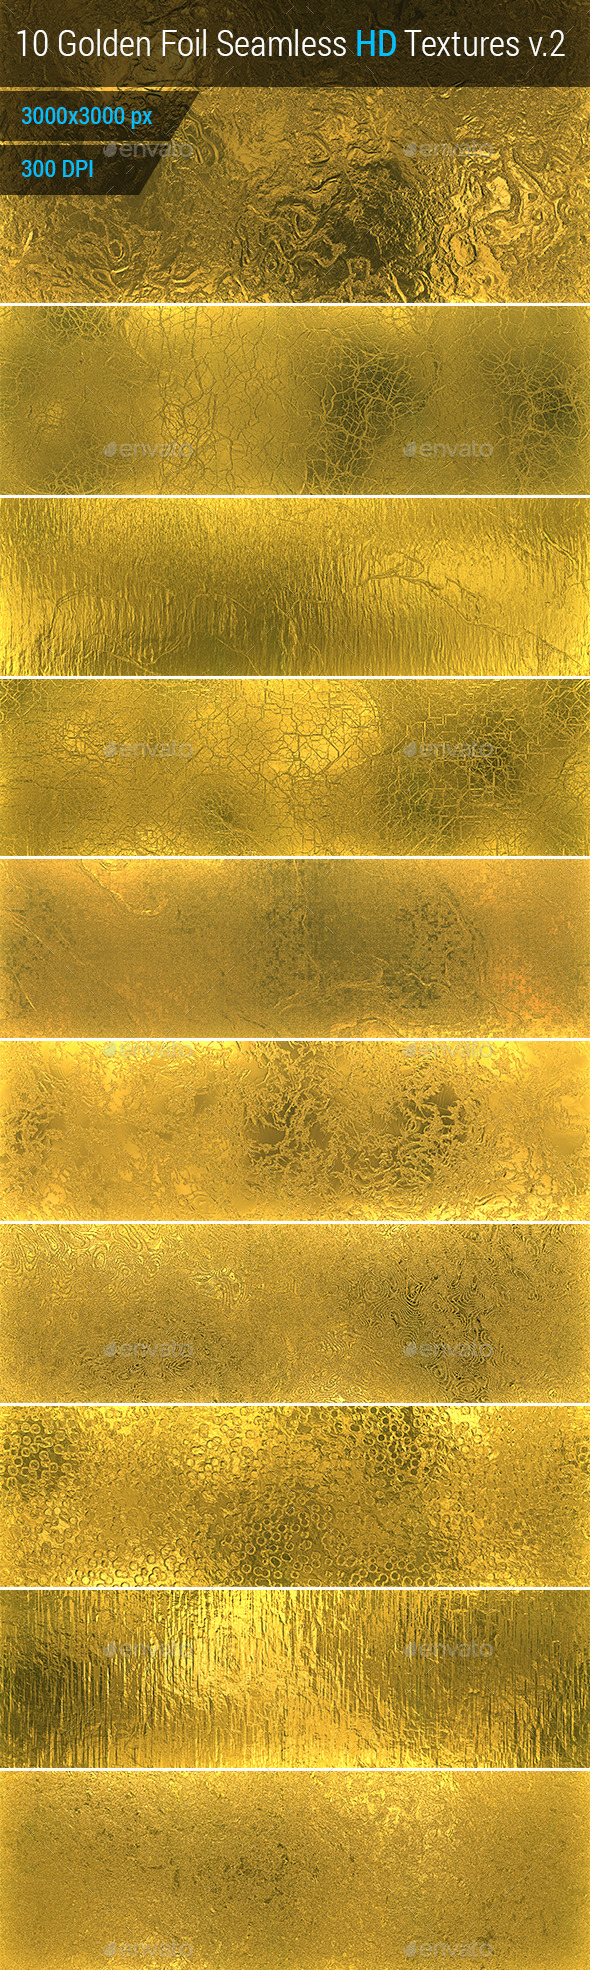 Golden Foil Seamless HD Textures Set v.2 - Metal Textures